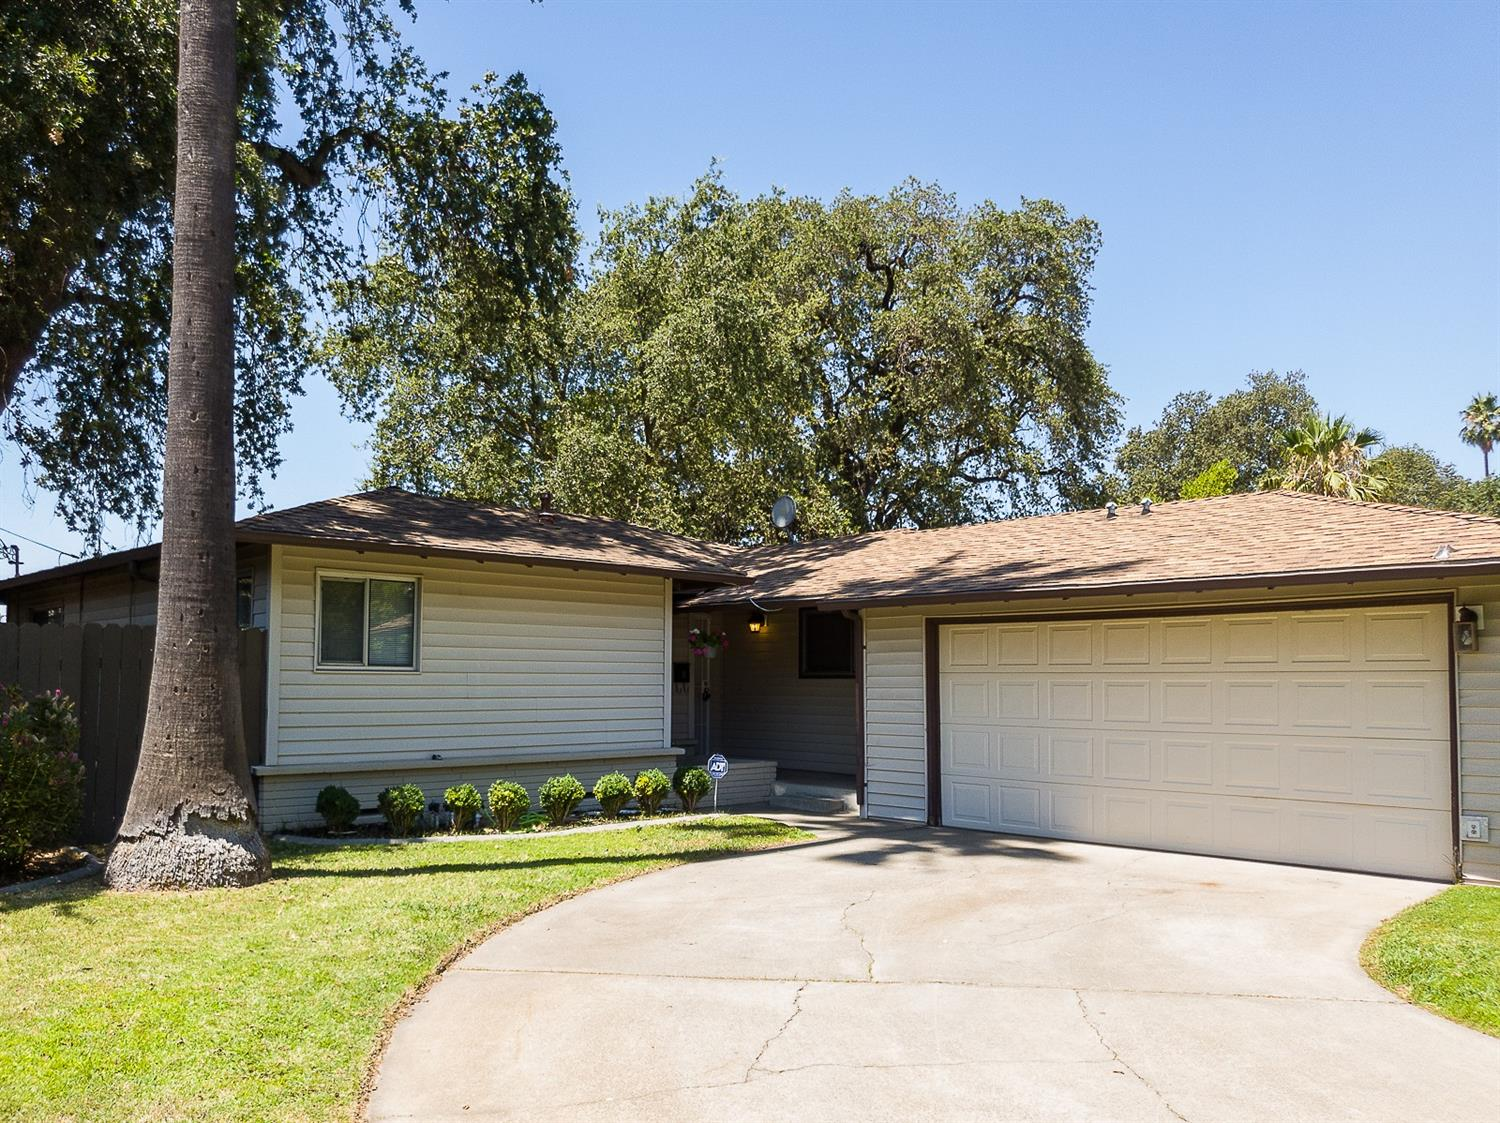 Three bedroom and two bath home in a nice West Sacramento neighborhood! This lot has mature trees, no neighbors behind you and a dog run/kennel.  Close to downtown Sacramento government offices, Golden 1 Arena, restaurants, bars and nightlife! Choose your own color palette and make this home.